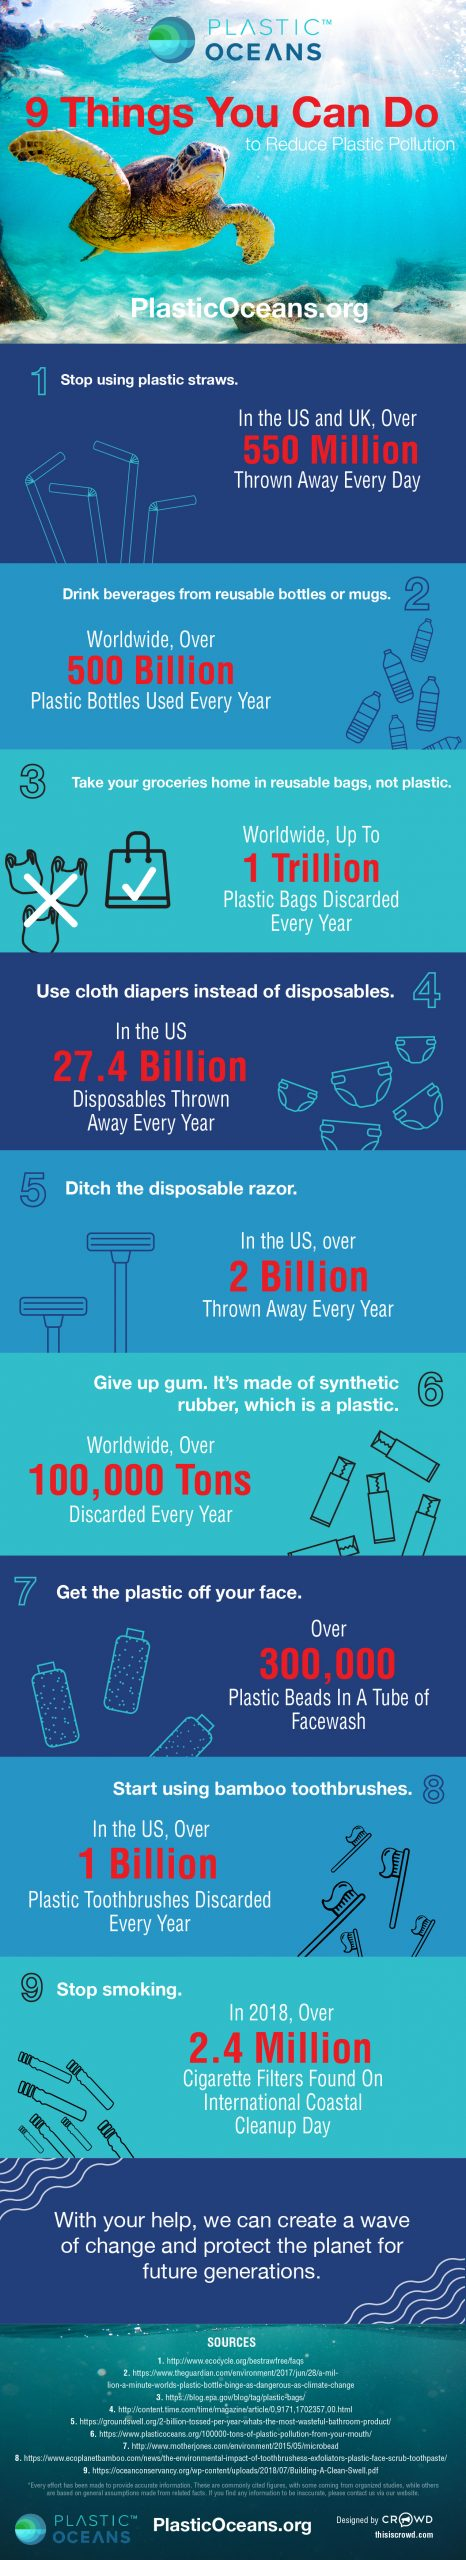 9 Tips to Reduce Plastic Pollution Infographic.